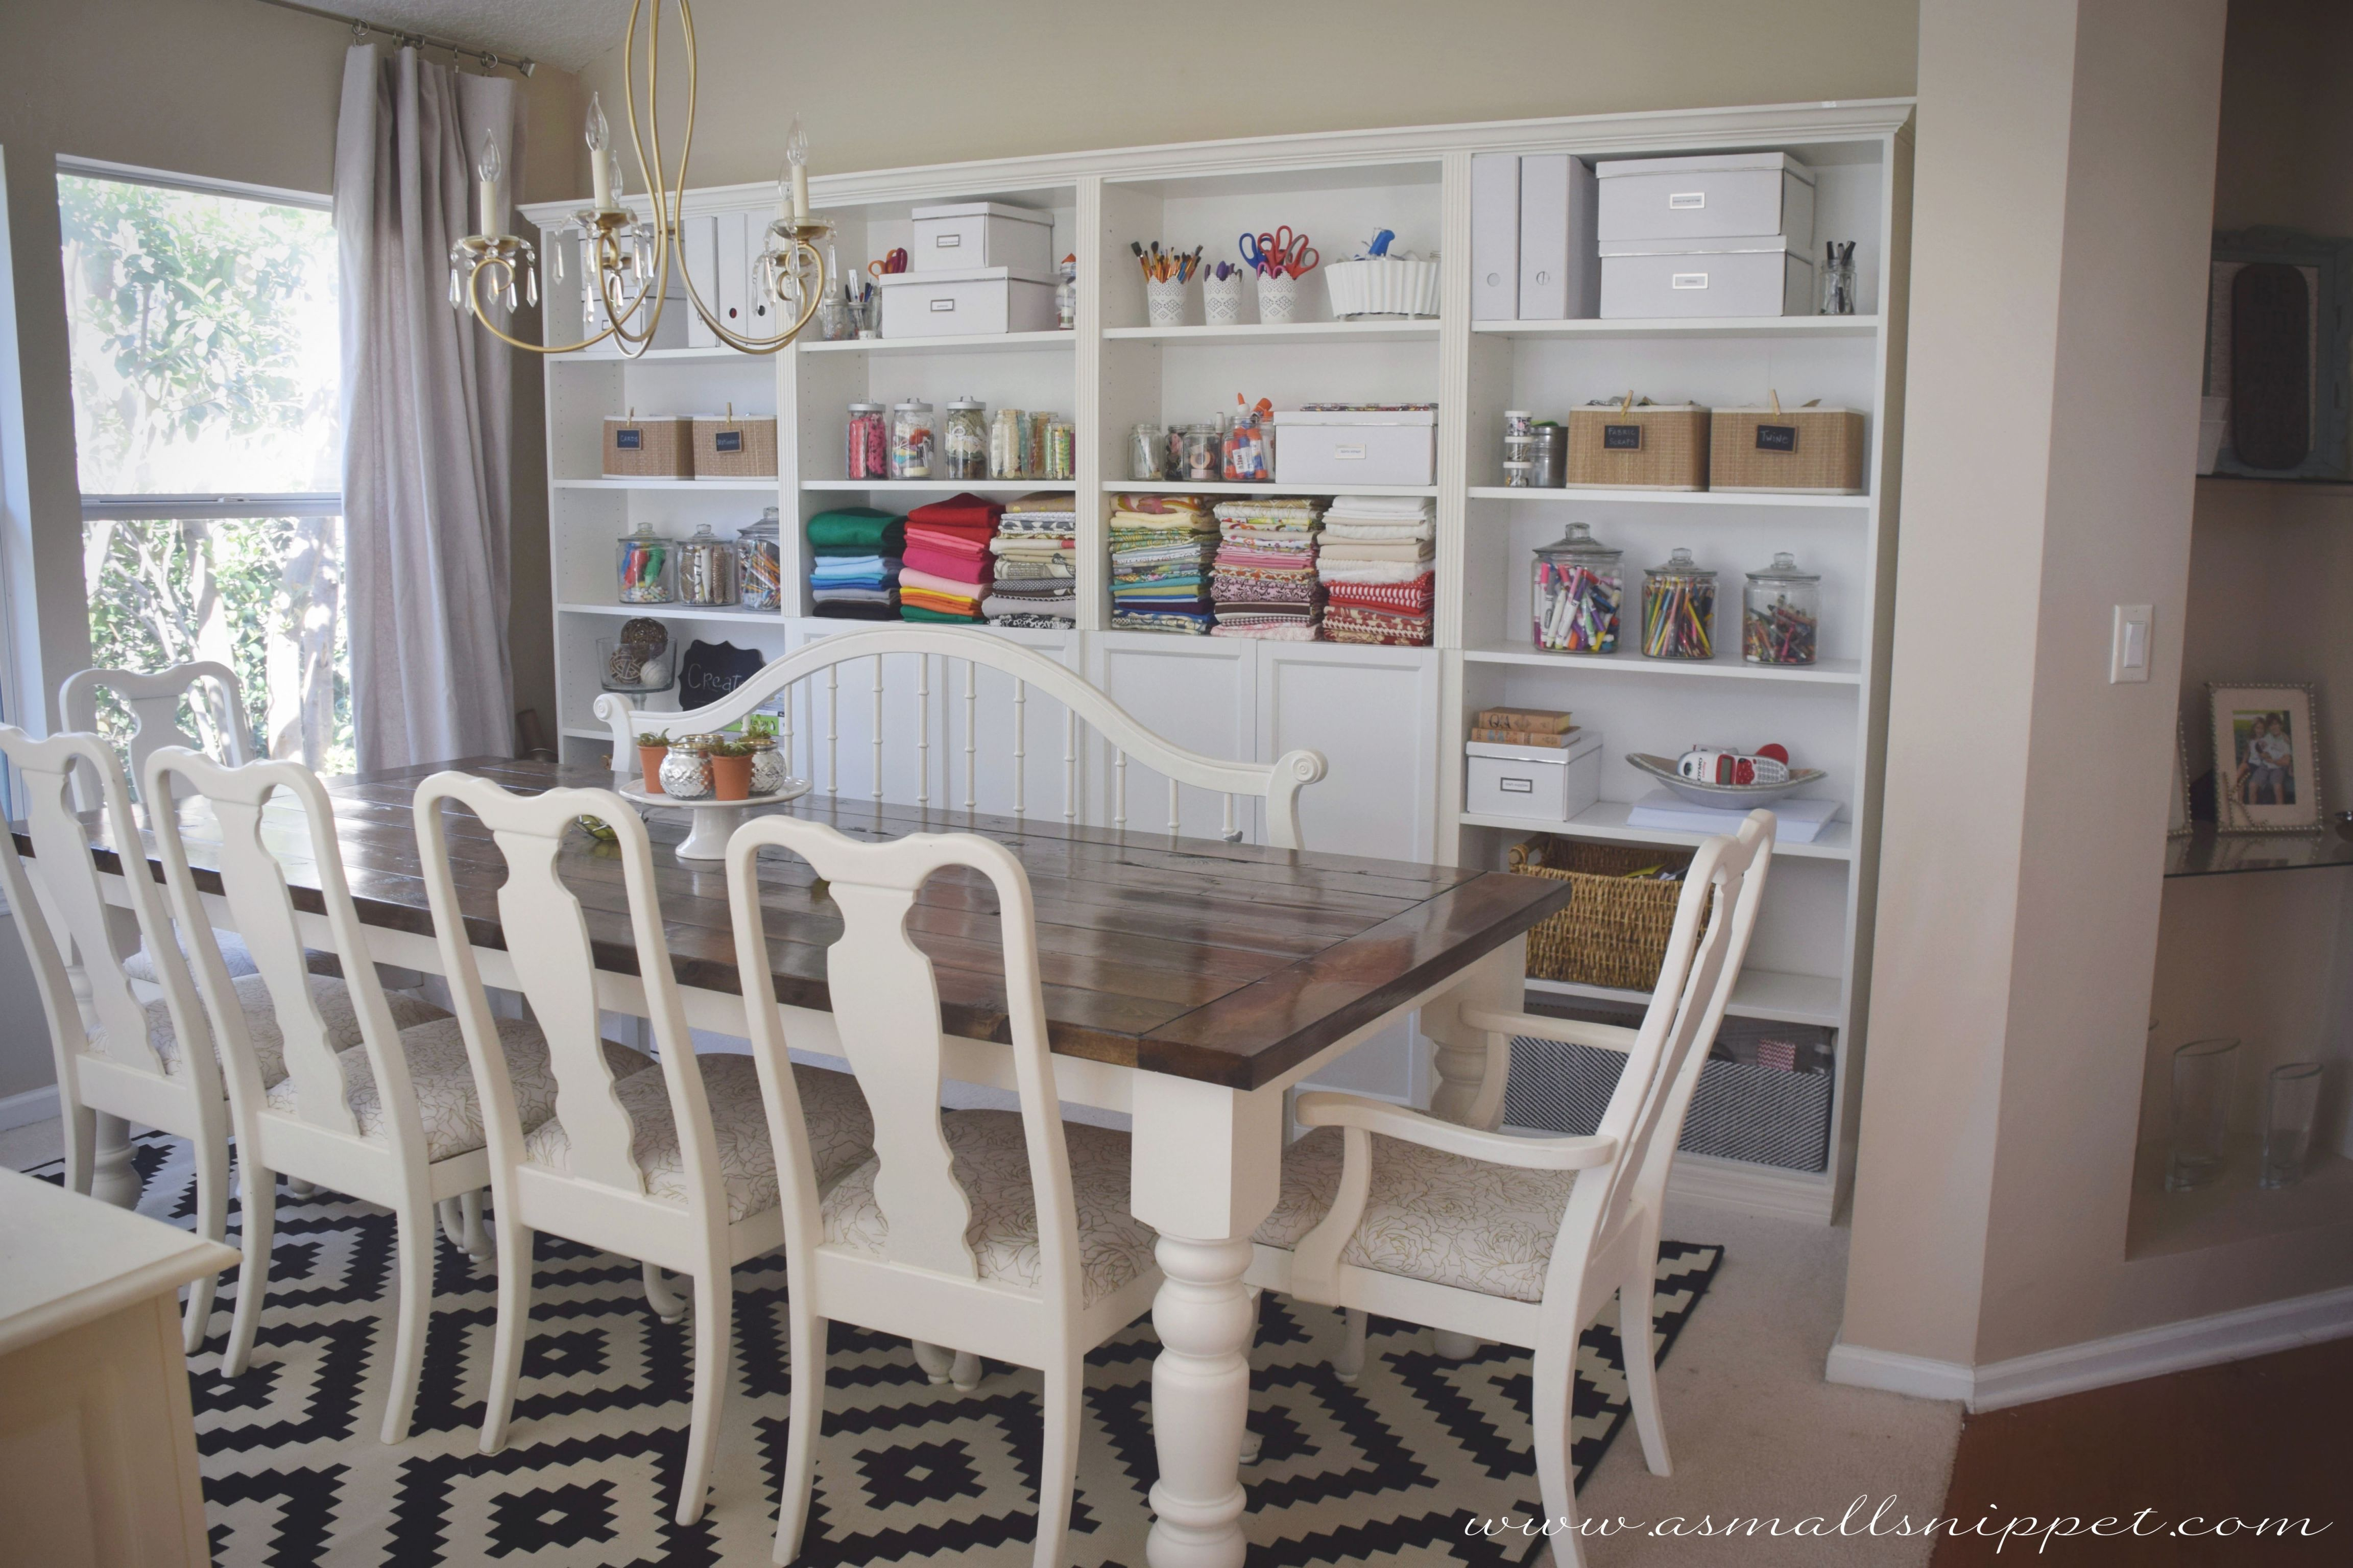 Dining Room Makeover Featuring Ikea Faux Built Ins | A Small throughout Best of Ikea Wall Cabinets Living Room